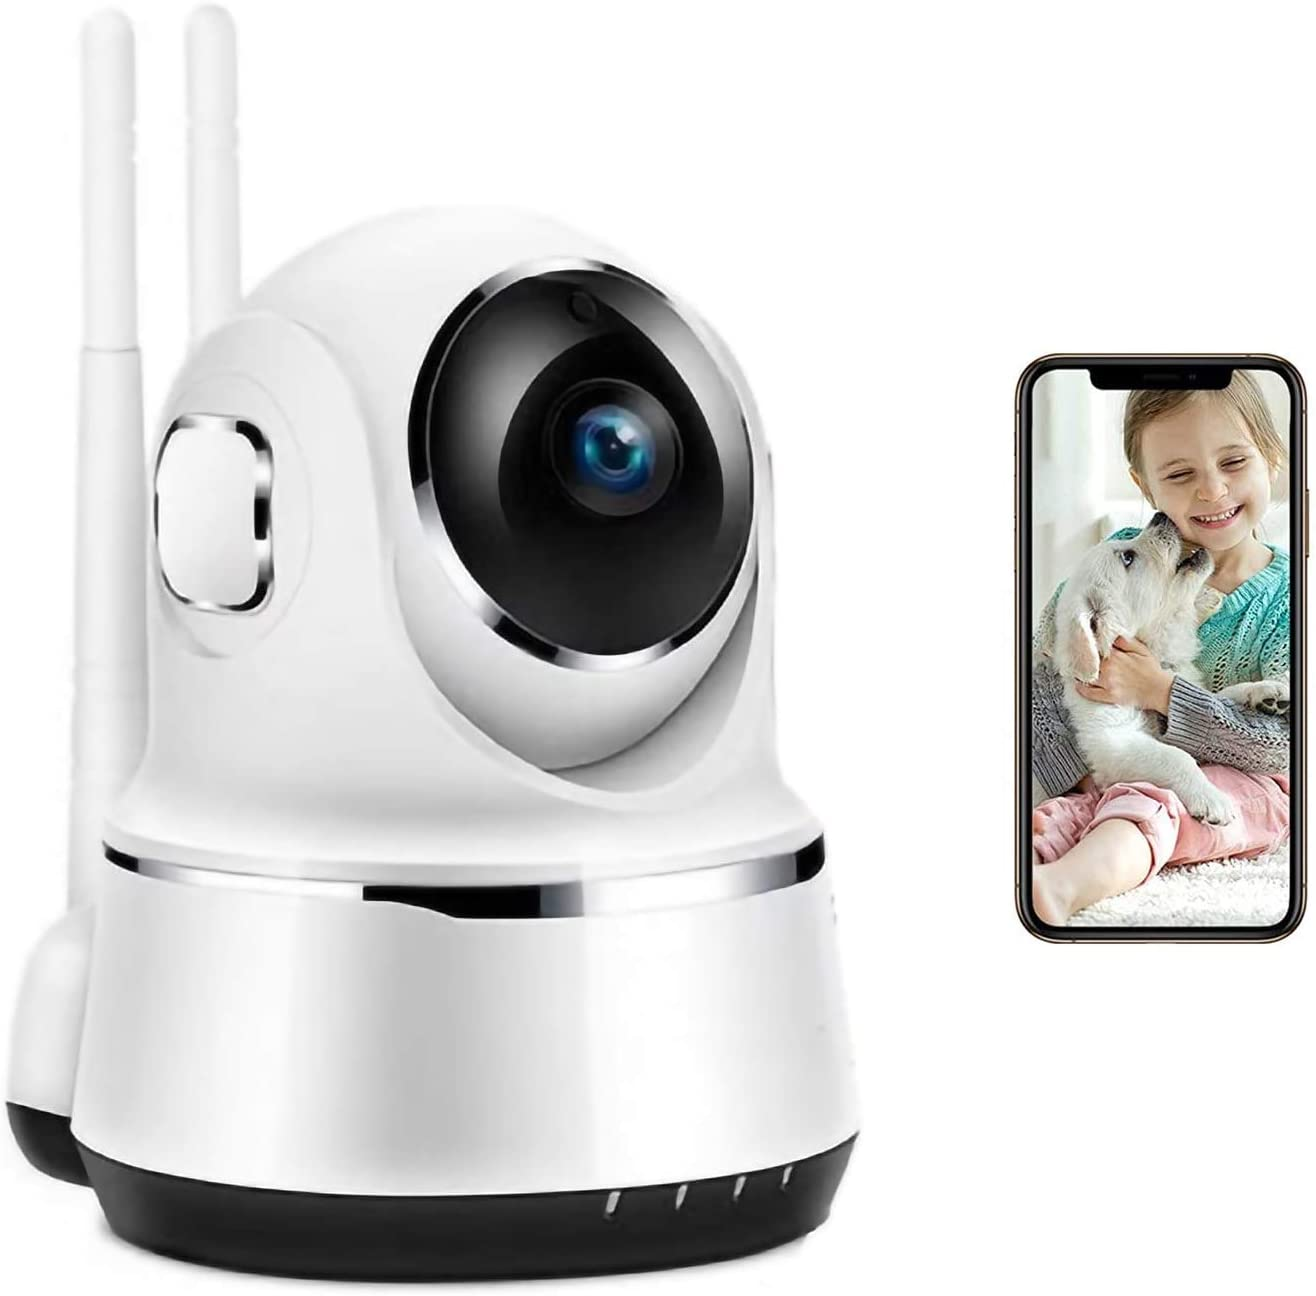 Wireless Indoor Camera Home Security System WiFi Security Camera Video Audio Monitor Baby with Night Vision Motion Detection 2-Way Audio for Pet/Baby/Nanny